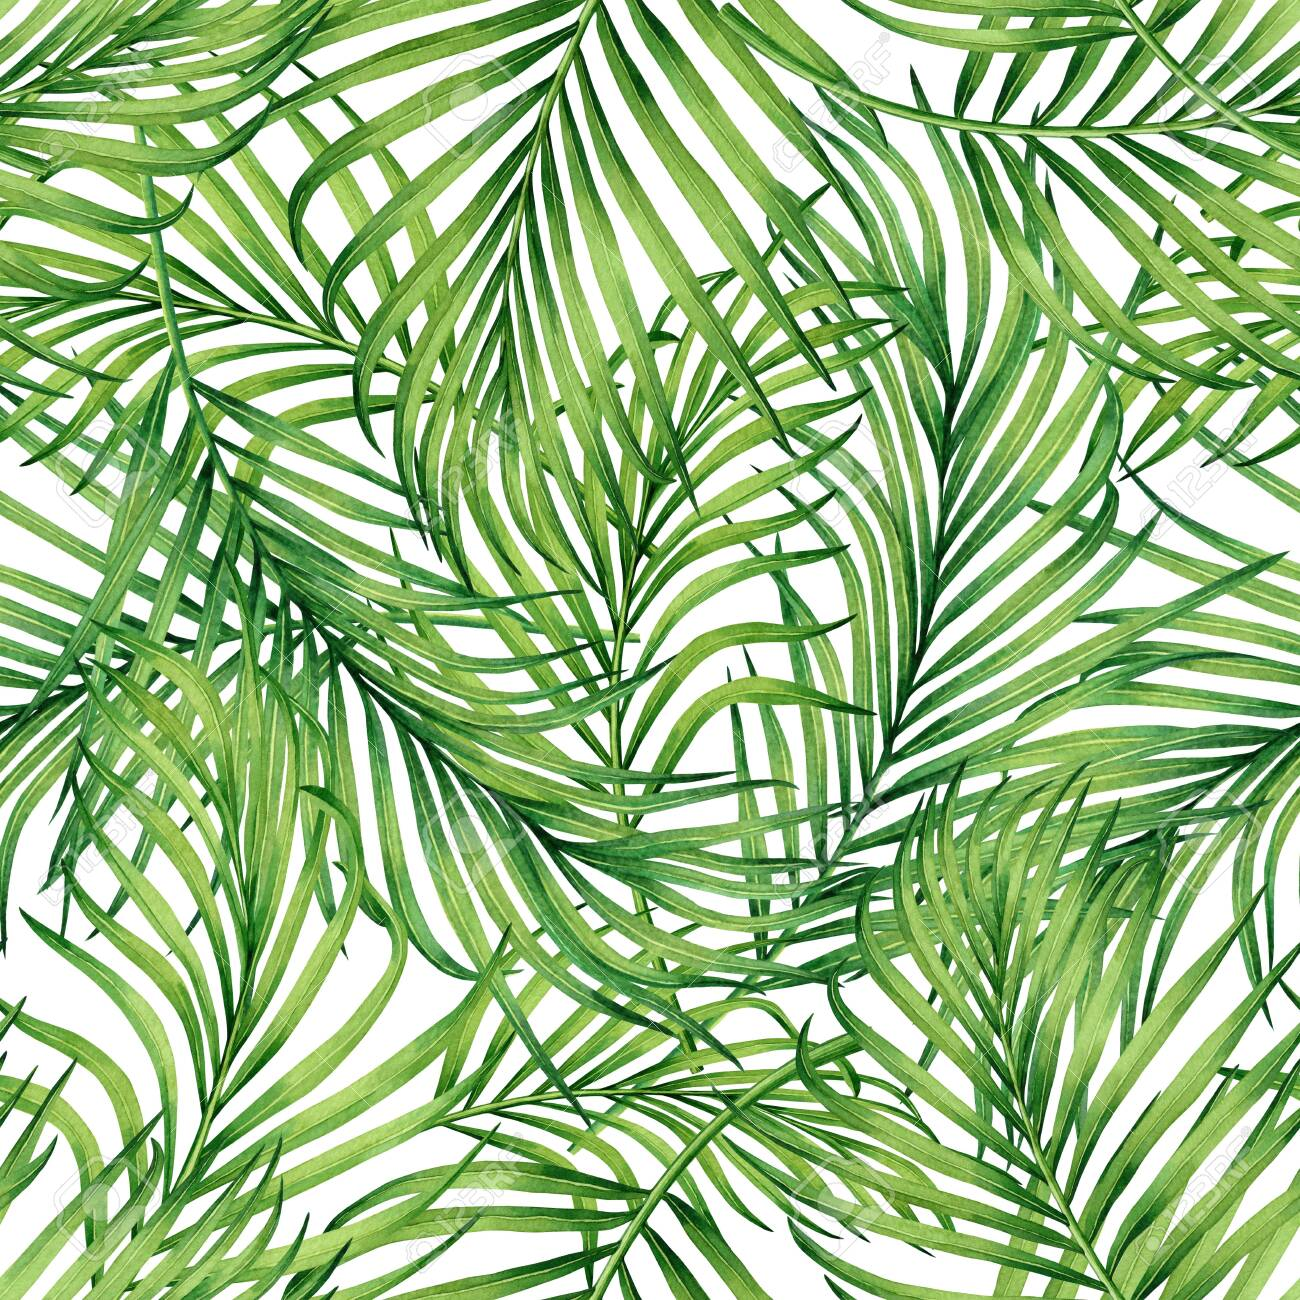 Watercolor painting coconut,banana,palm leaf,green leaves seamless pattern background.Watercolor hand drawn illustration tropical exotic leaf prints for wallpaper,textile Hawaii aloha jungle style. - 138071465